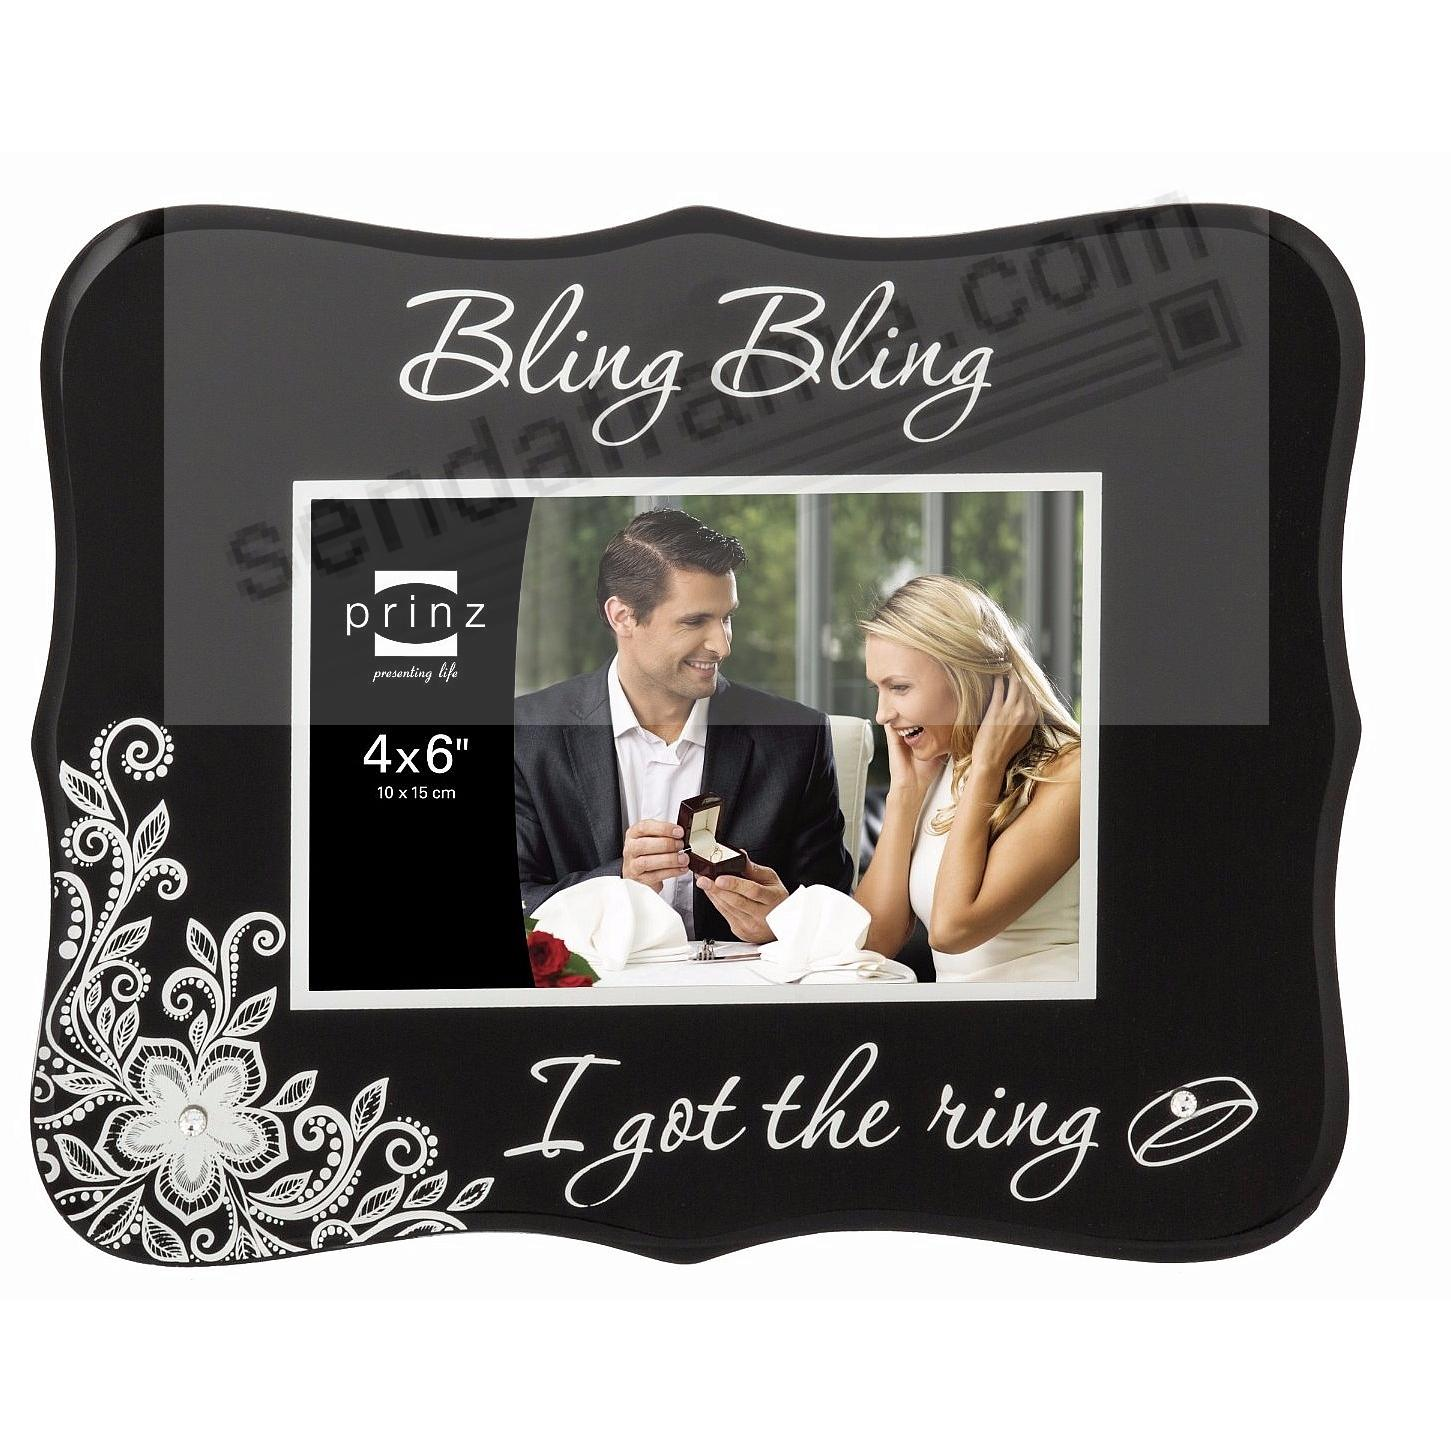 She Said Yes Bling Bling I Got The Ring Frame By Prinz Picture